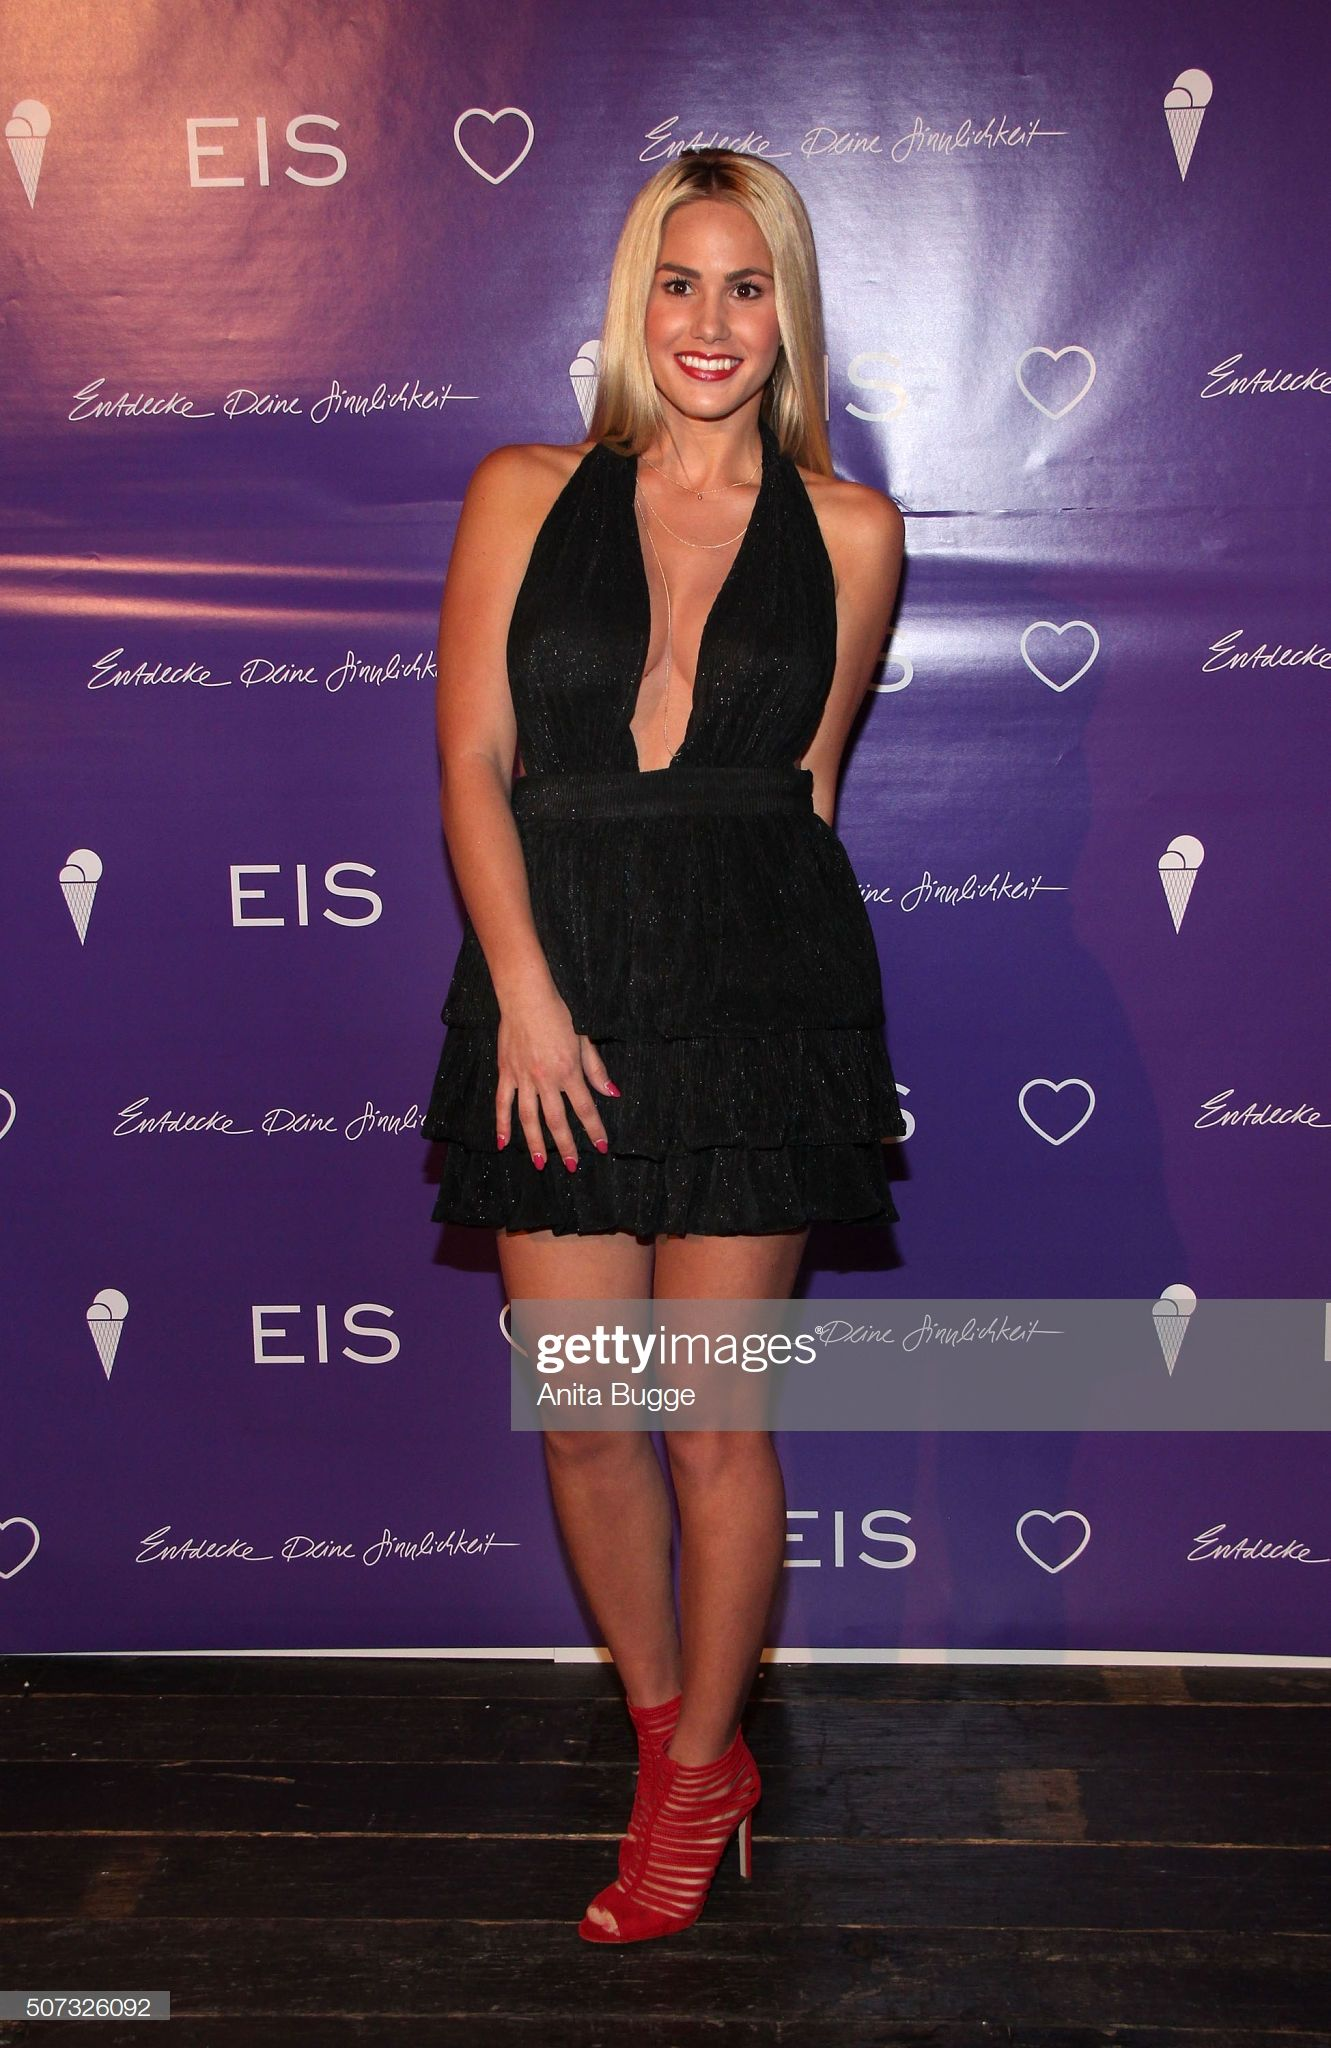 Angelina Heger attends the EIS! Party at Soho Hotel on